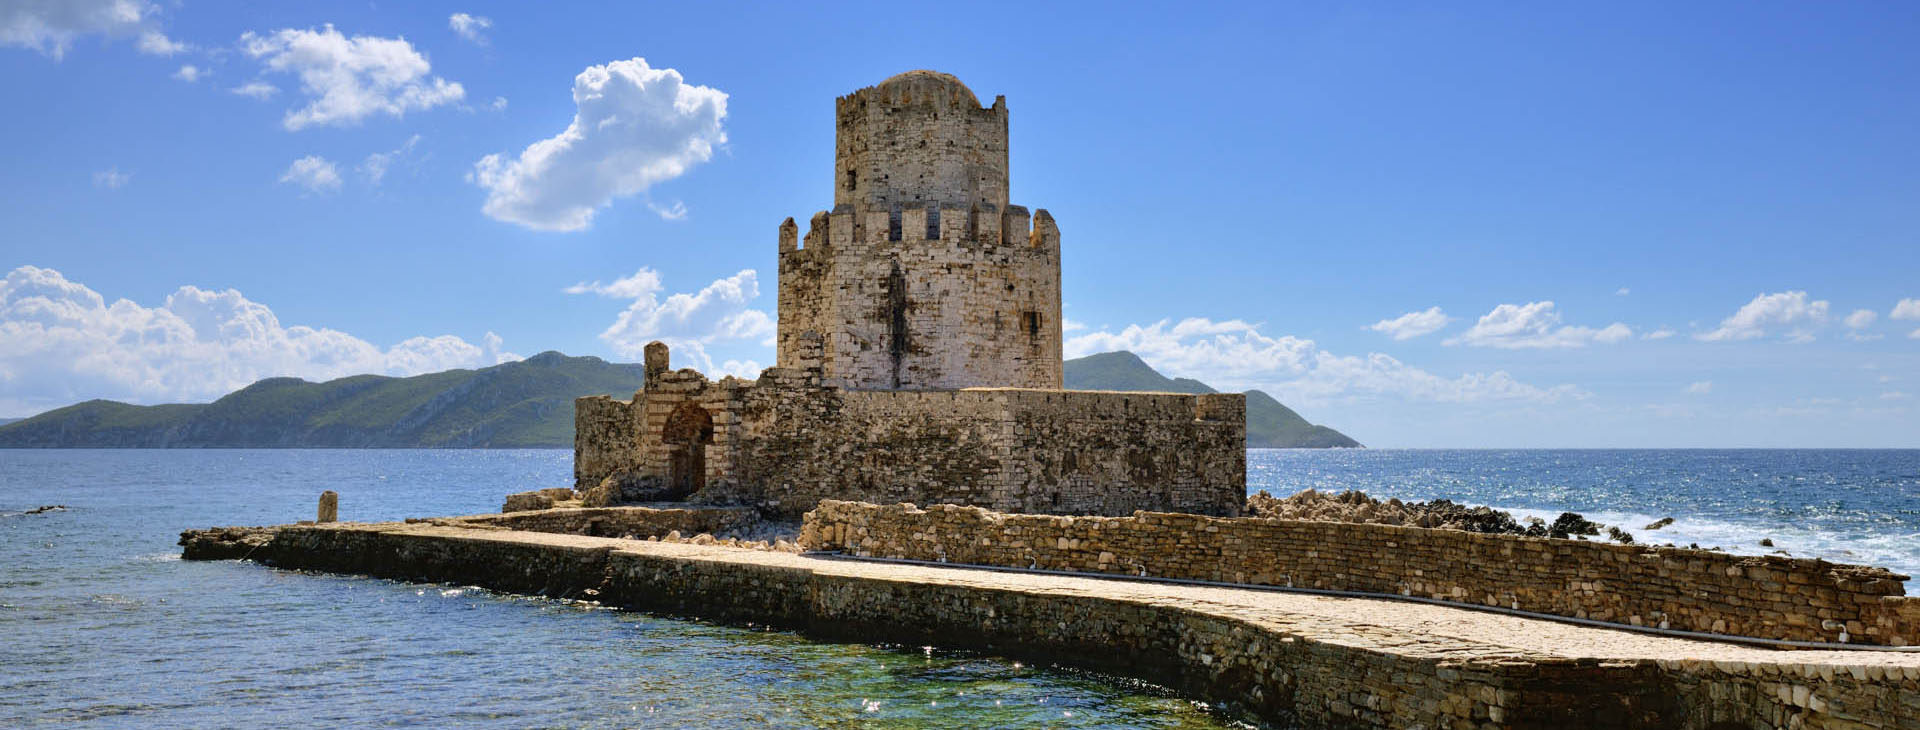 Bourtzi at south of the Methoni castle, Messinia